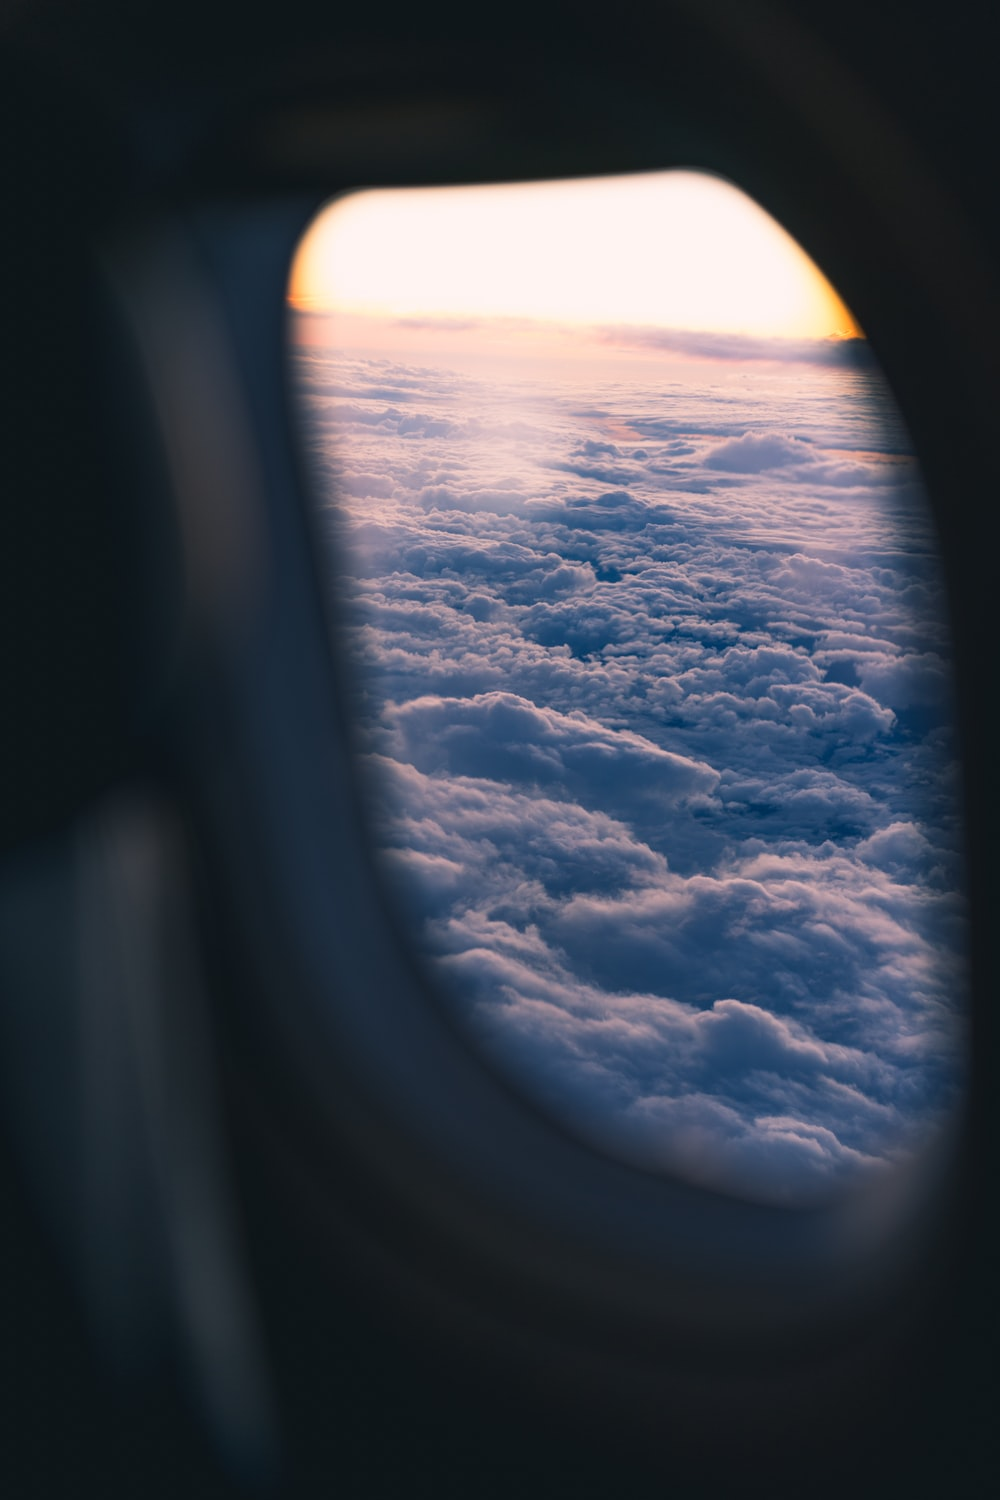 photo of clouds from airplane's window